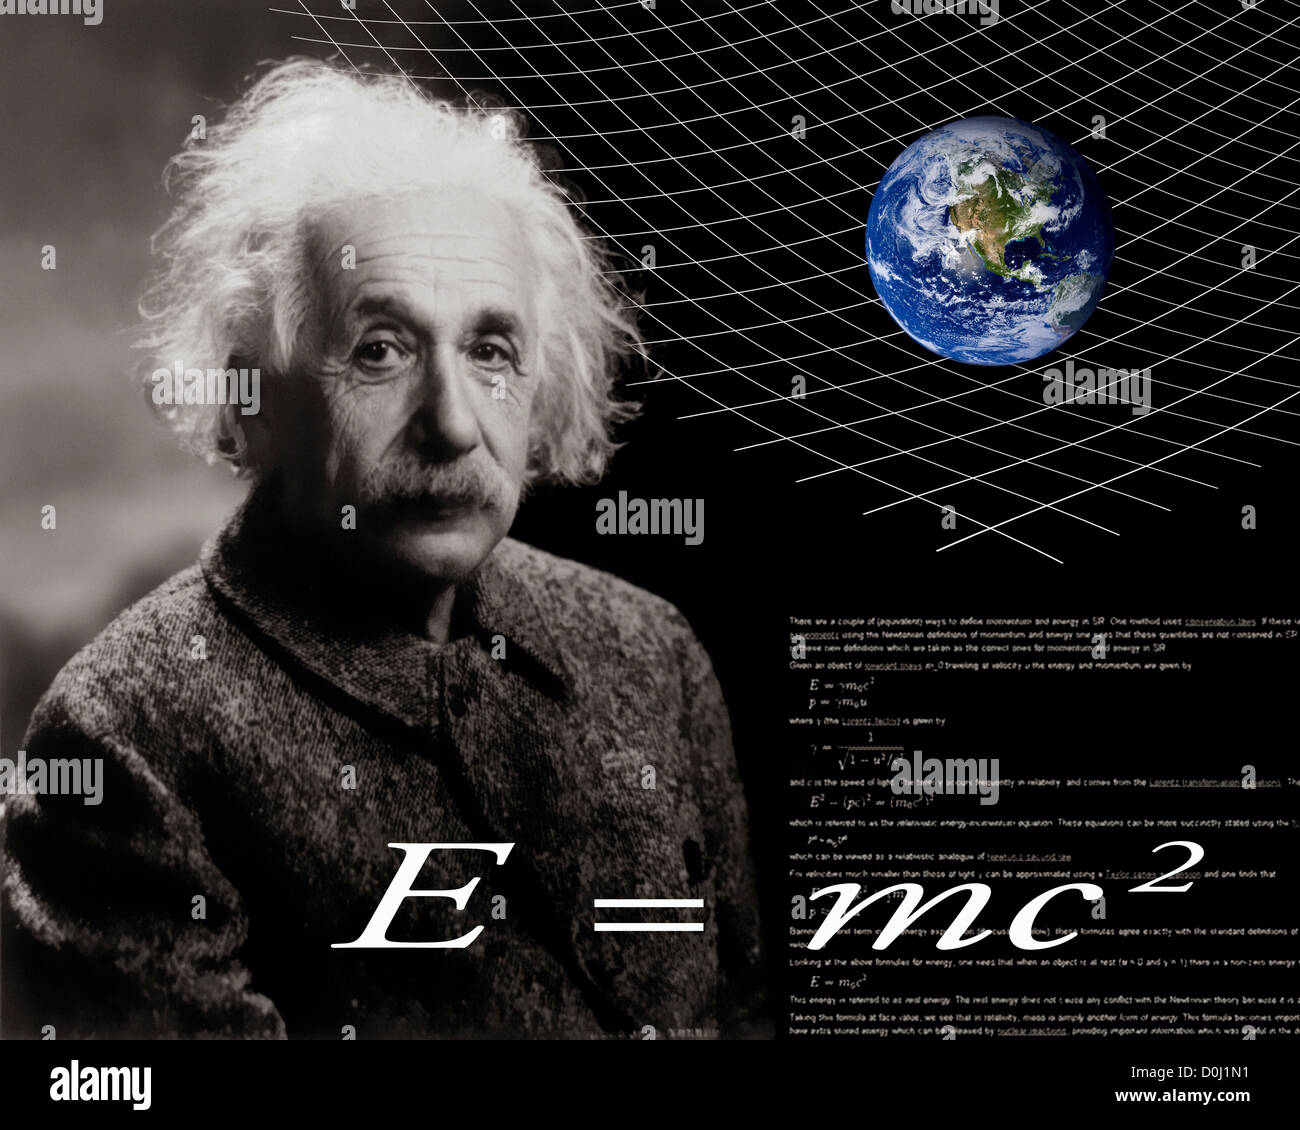 albert einsteins discovery of the theory of relativity It was pondering these developments that led einstein to discover the special  theory of relativity in 1905 the discovery was not momentary the theory was the .